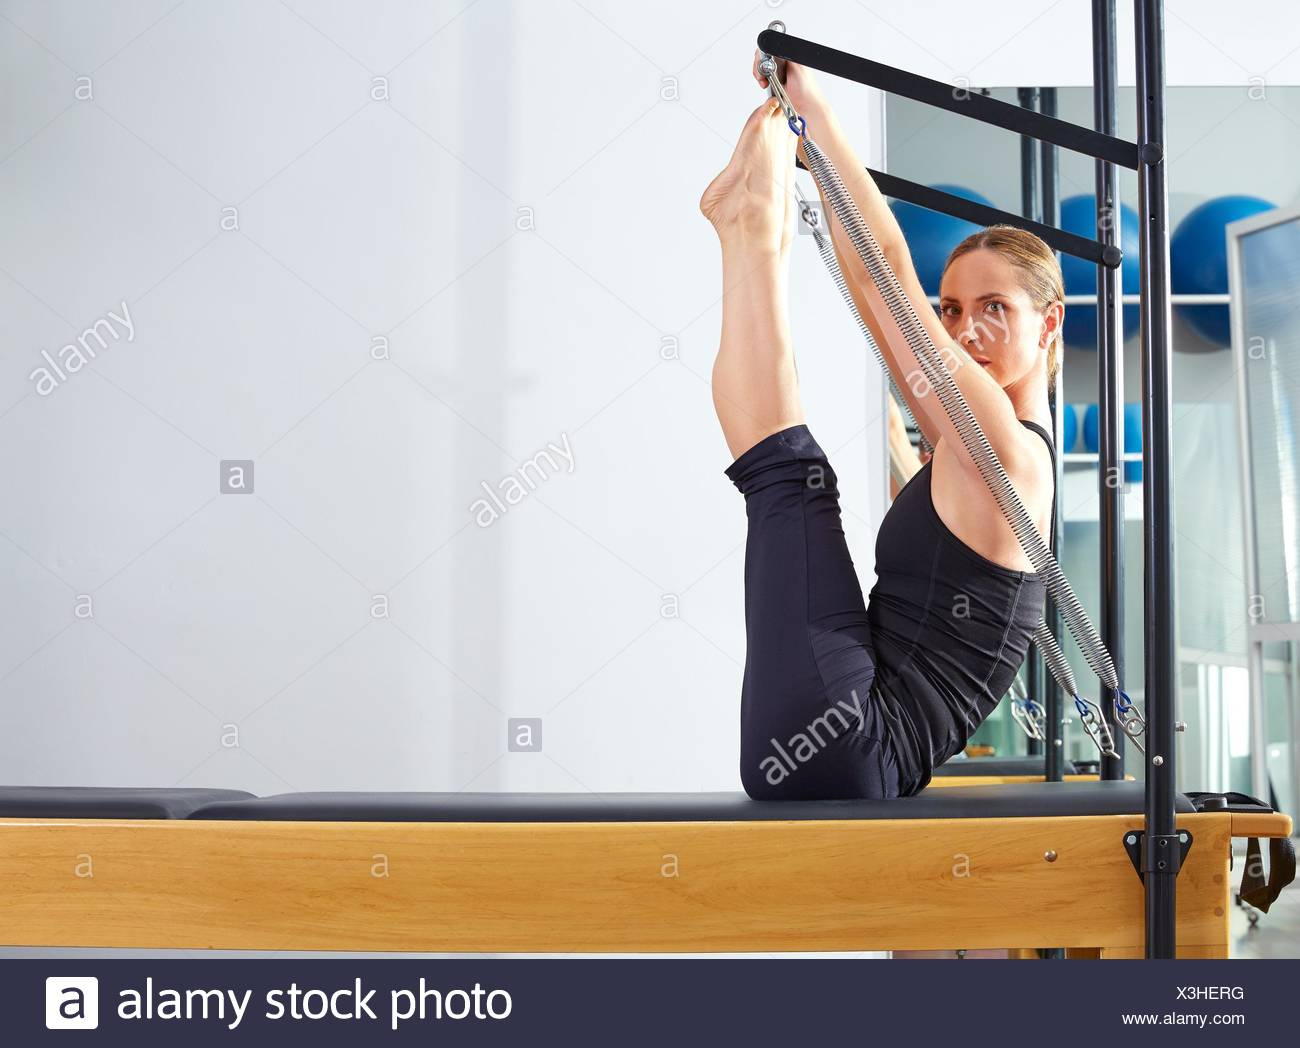 Pilates woman in reformer monki exercise at gym indoor. - Stock Image